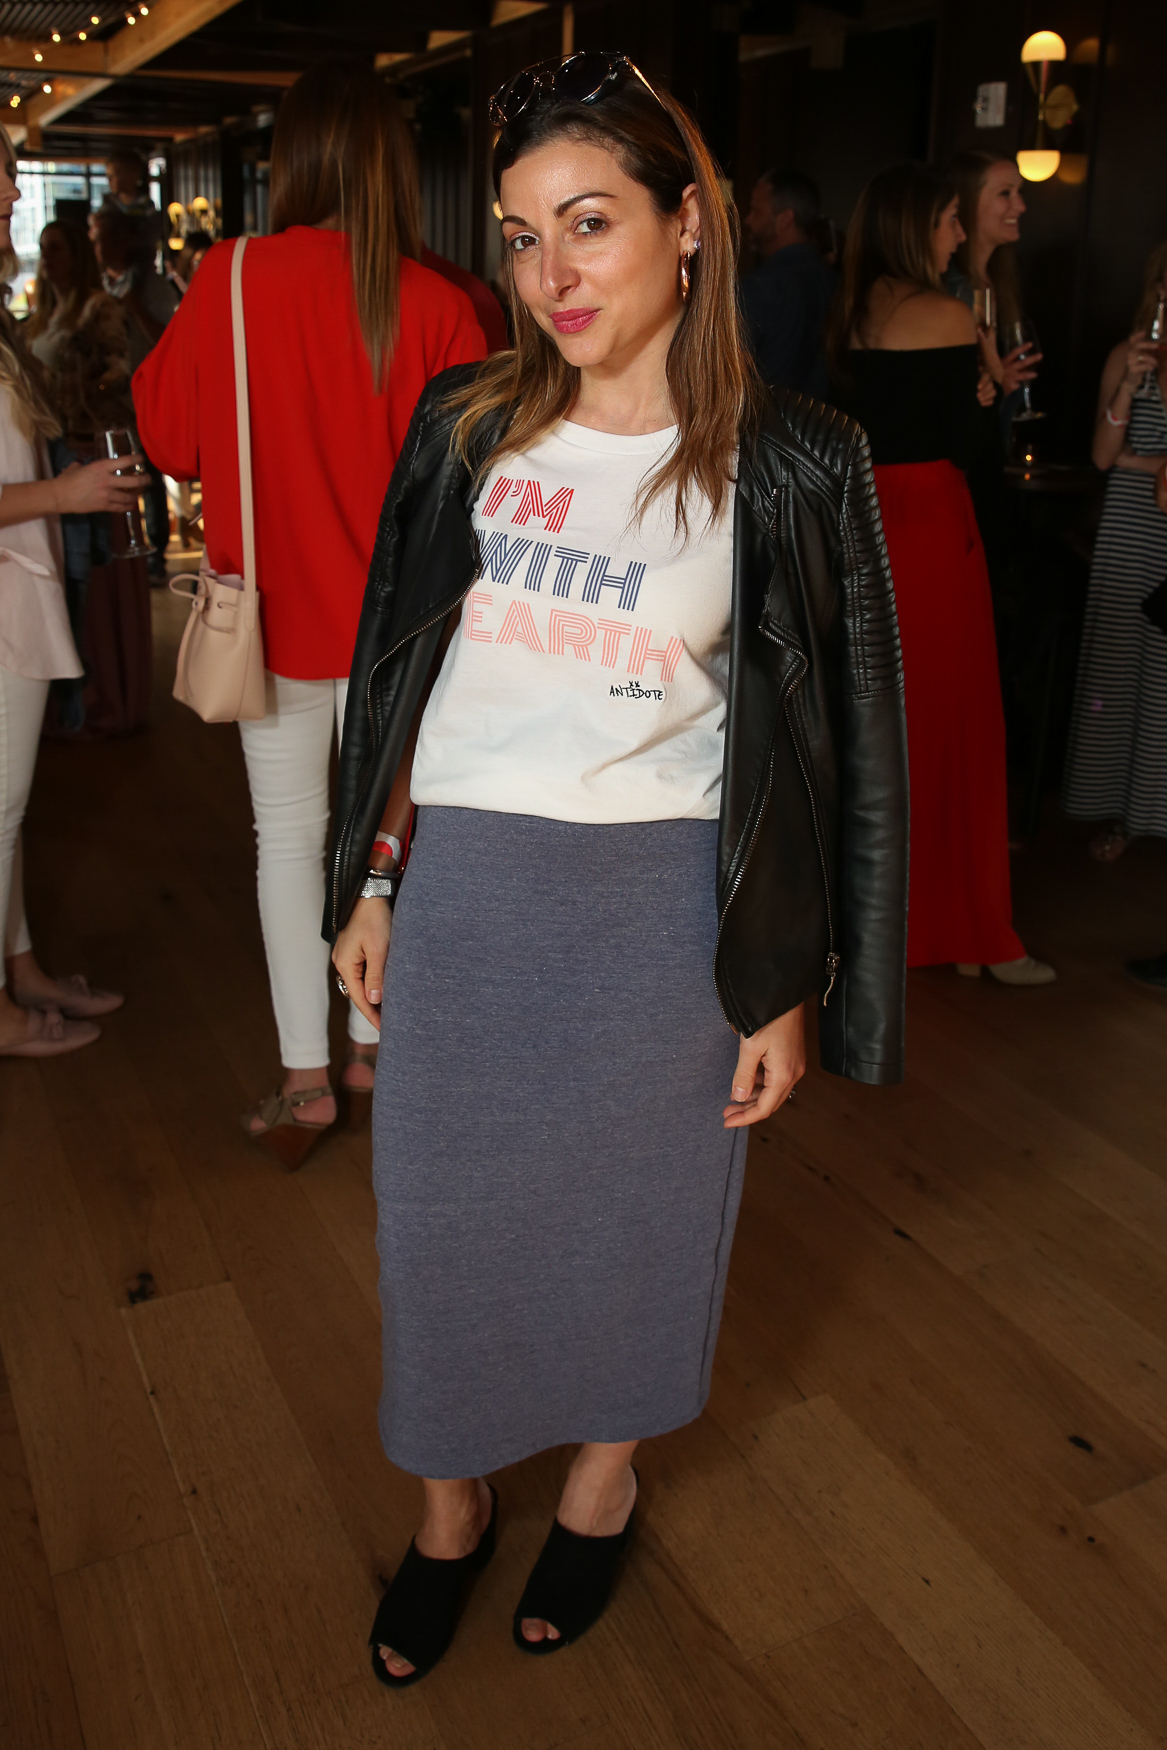 Sophie Blake's earth-supporting tee is already cool, but with a midi skirt and mules it feels pulled together.{ }(Amanda Andrade-Rhoades/DC Refined)